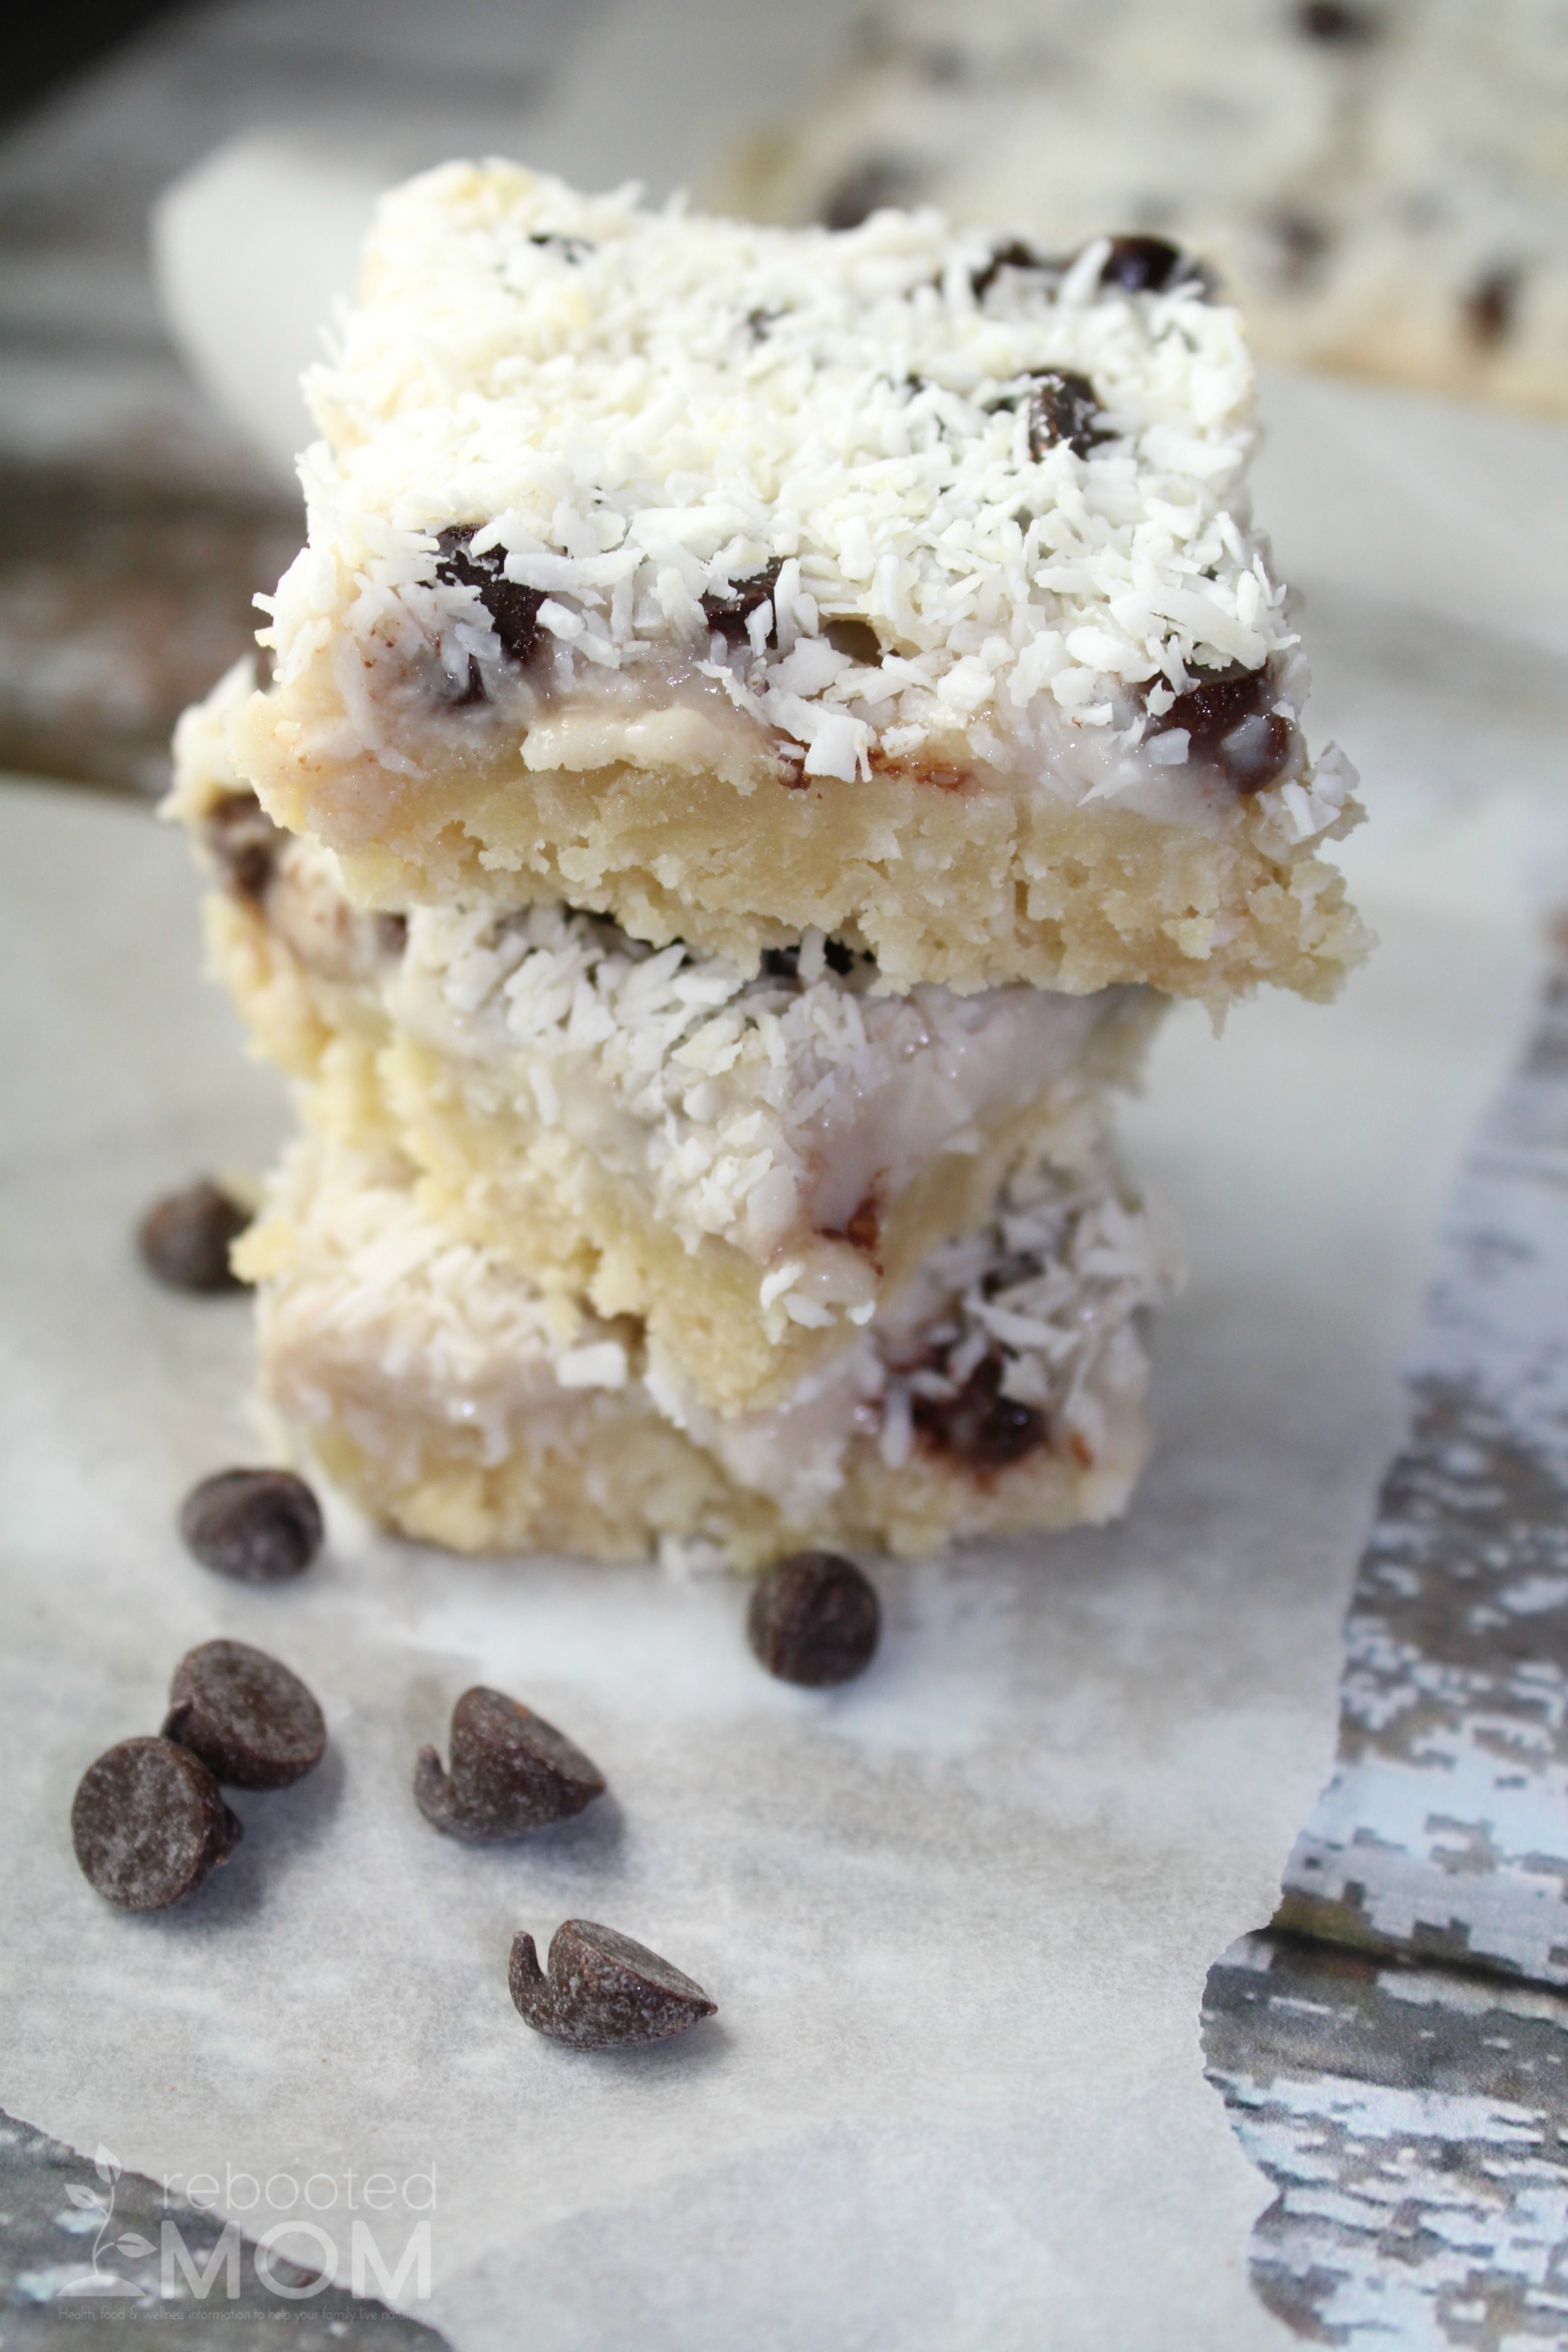 Magic Cookie Bars that are paleo and grain-free - a healthier alternative on a delicious family favorite at the holiday season!